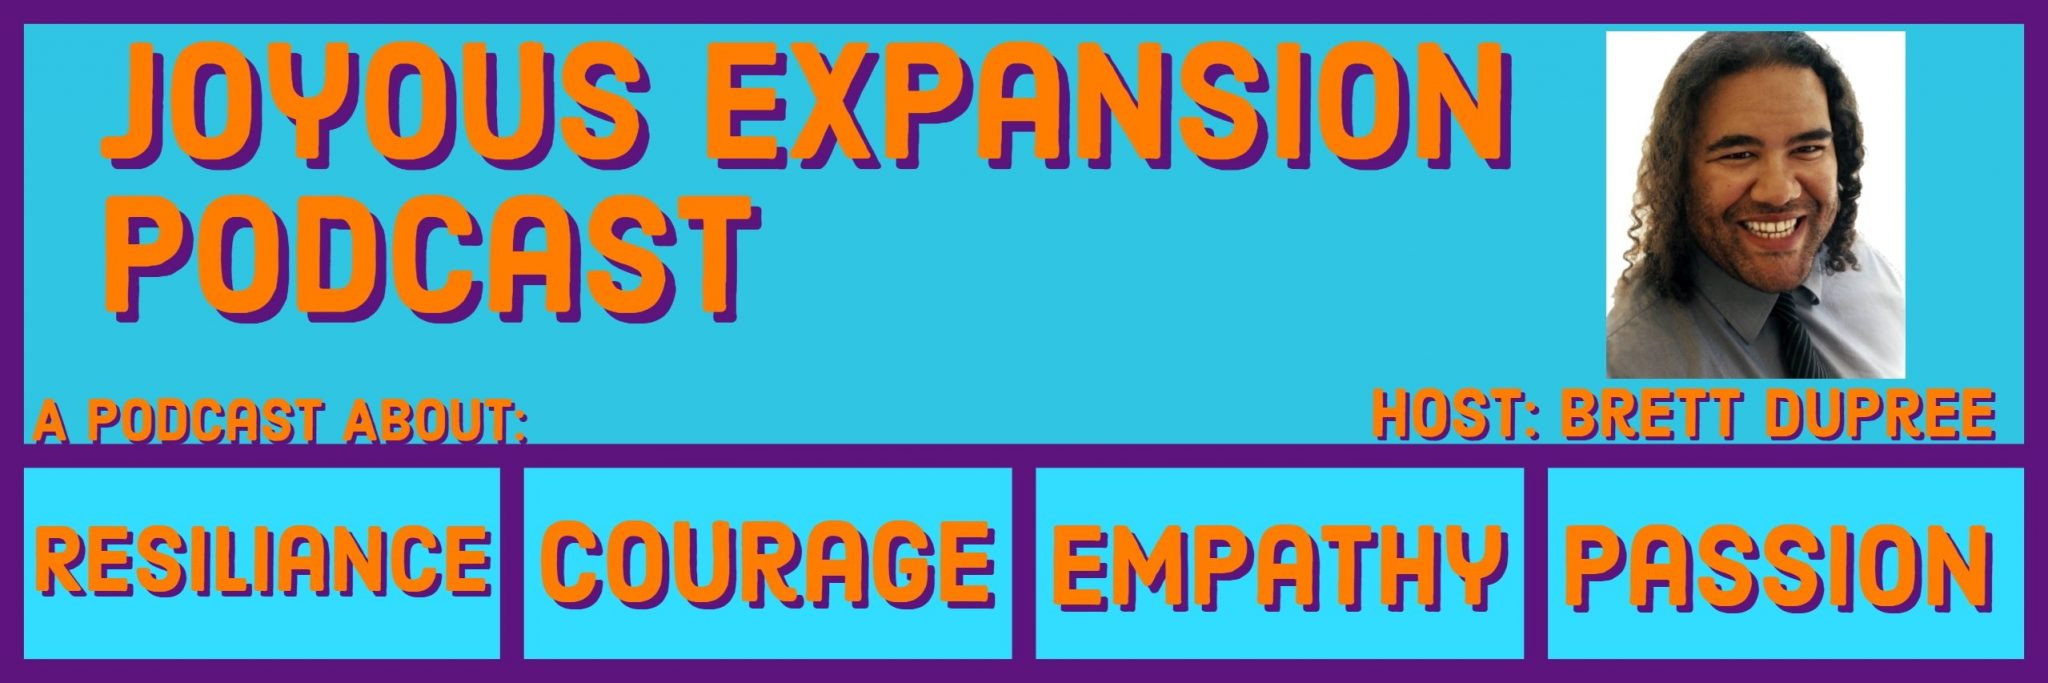 Joyous Expansion Podcast